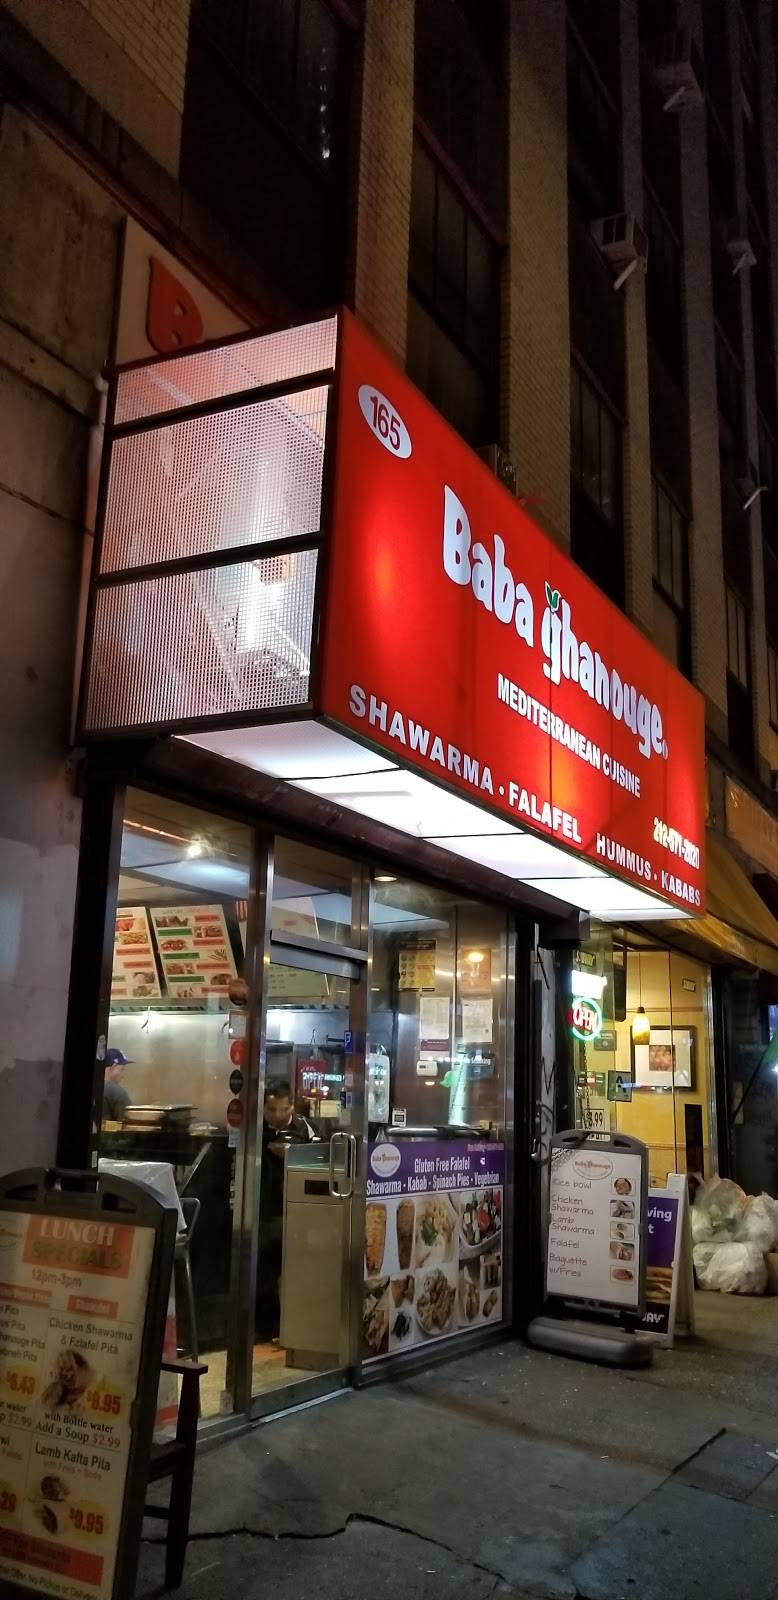 Baba Ghanouge | meal takeaway | 165 Church St, New York, NY 10007, USA | 2125712020 OR +1 212-571-2020